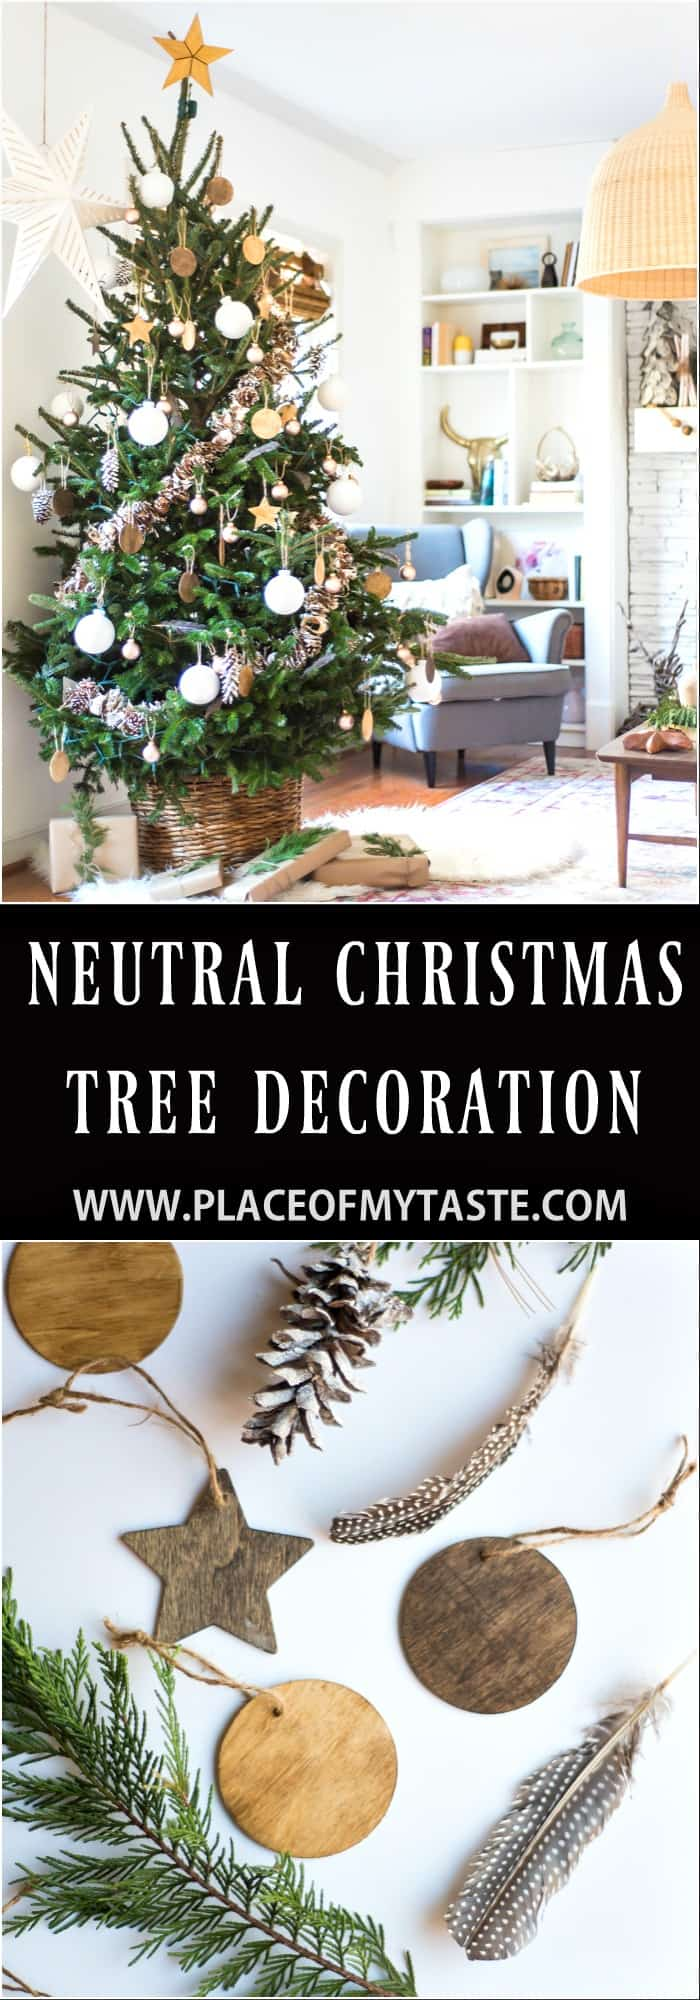 NEUTRAL CHRISTMAS TREE DECORATION